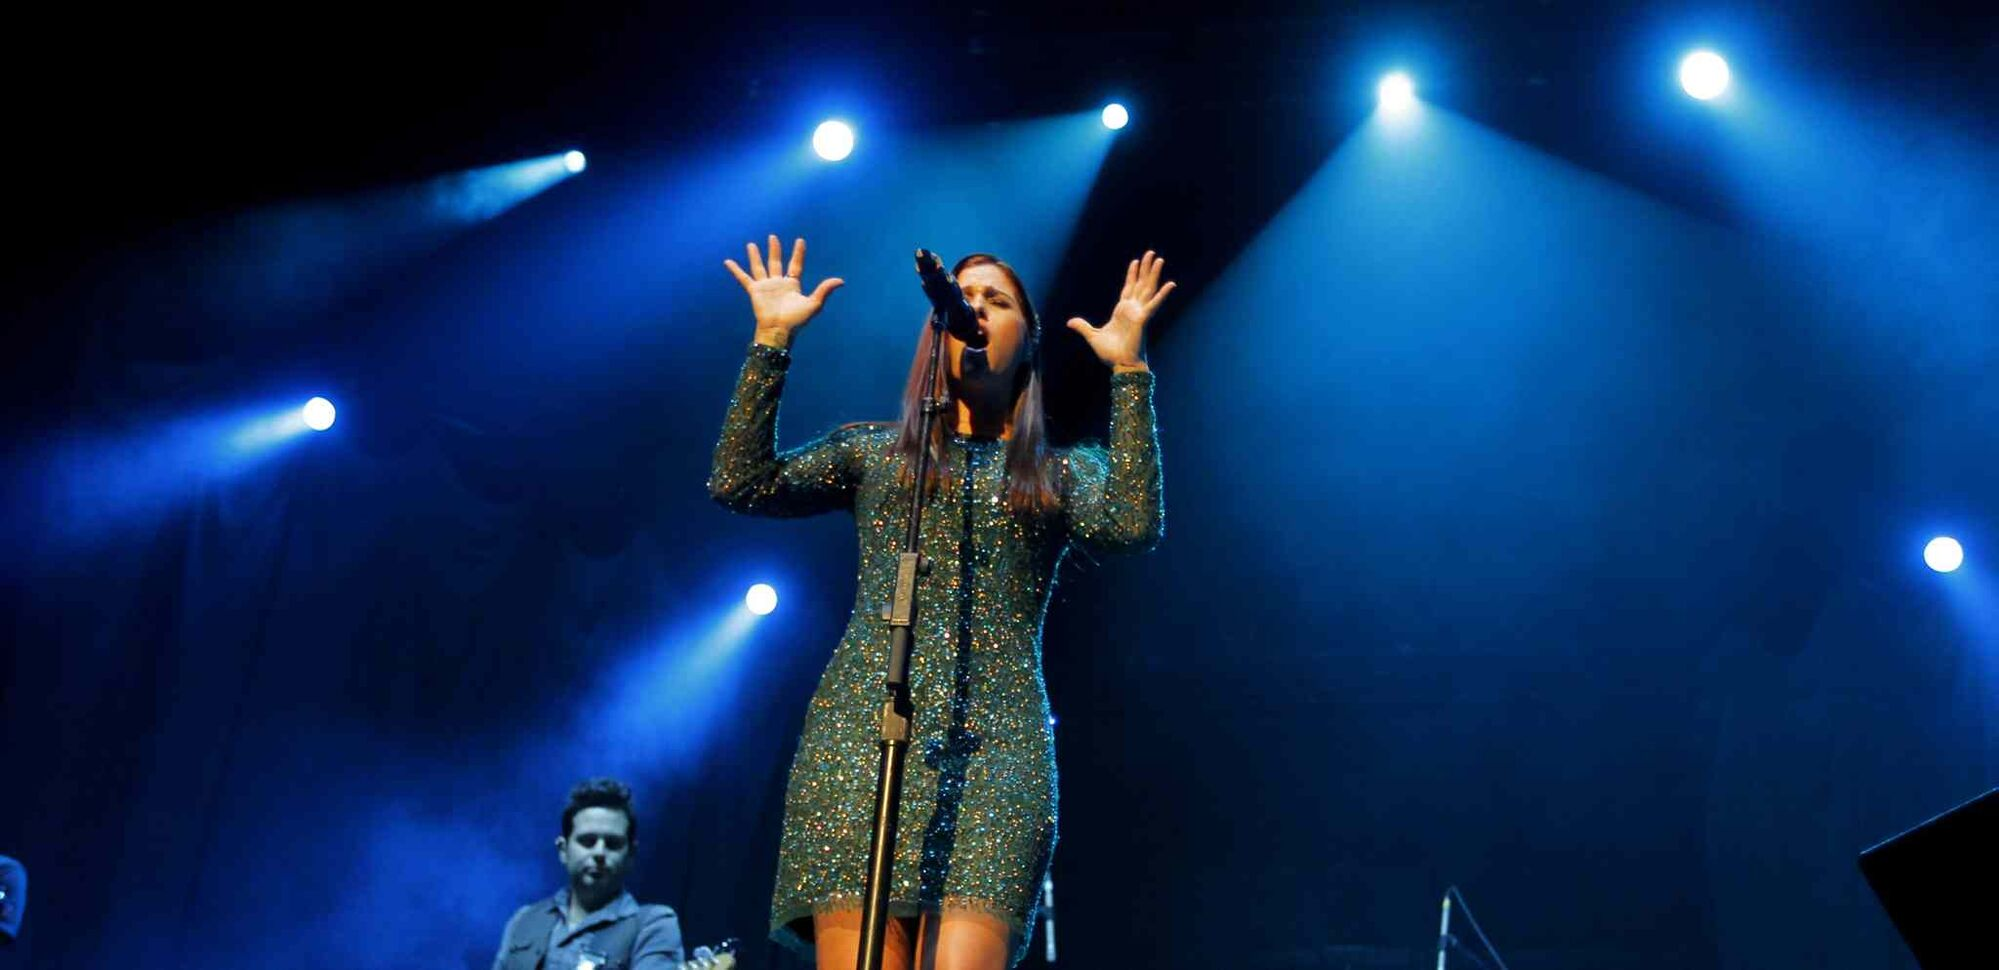 Singer-songwriter Cassadee Pope entertained the MTS Centre crowd as the opening act for Canadian country crooner Dean Brody on Wednesday night.